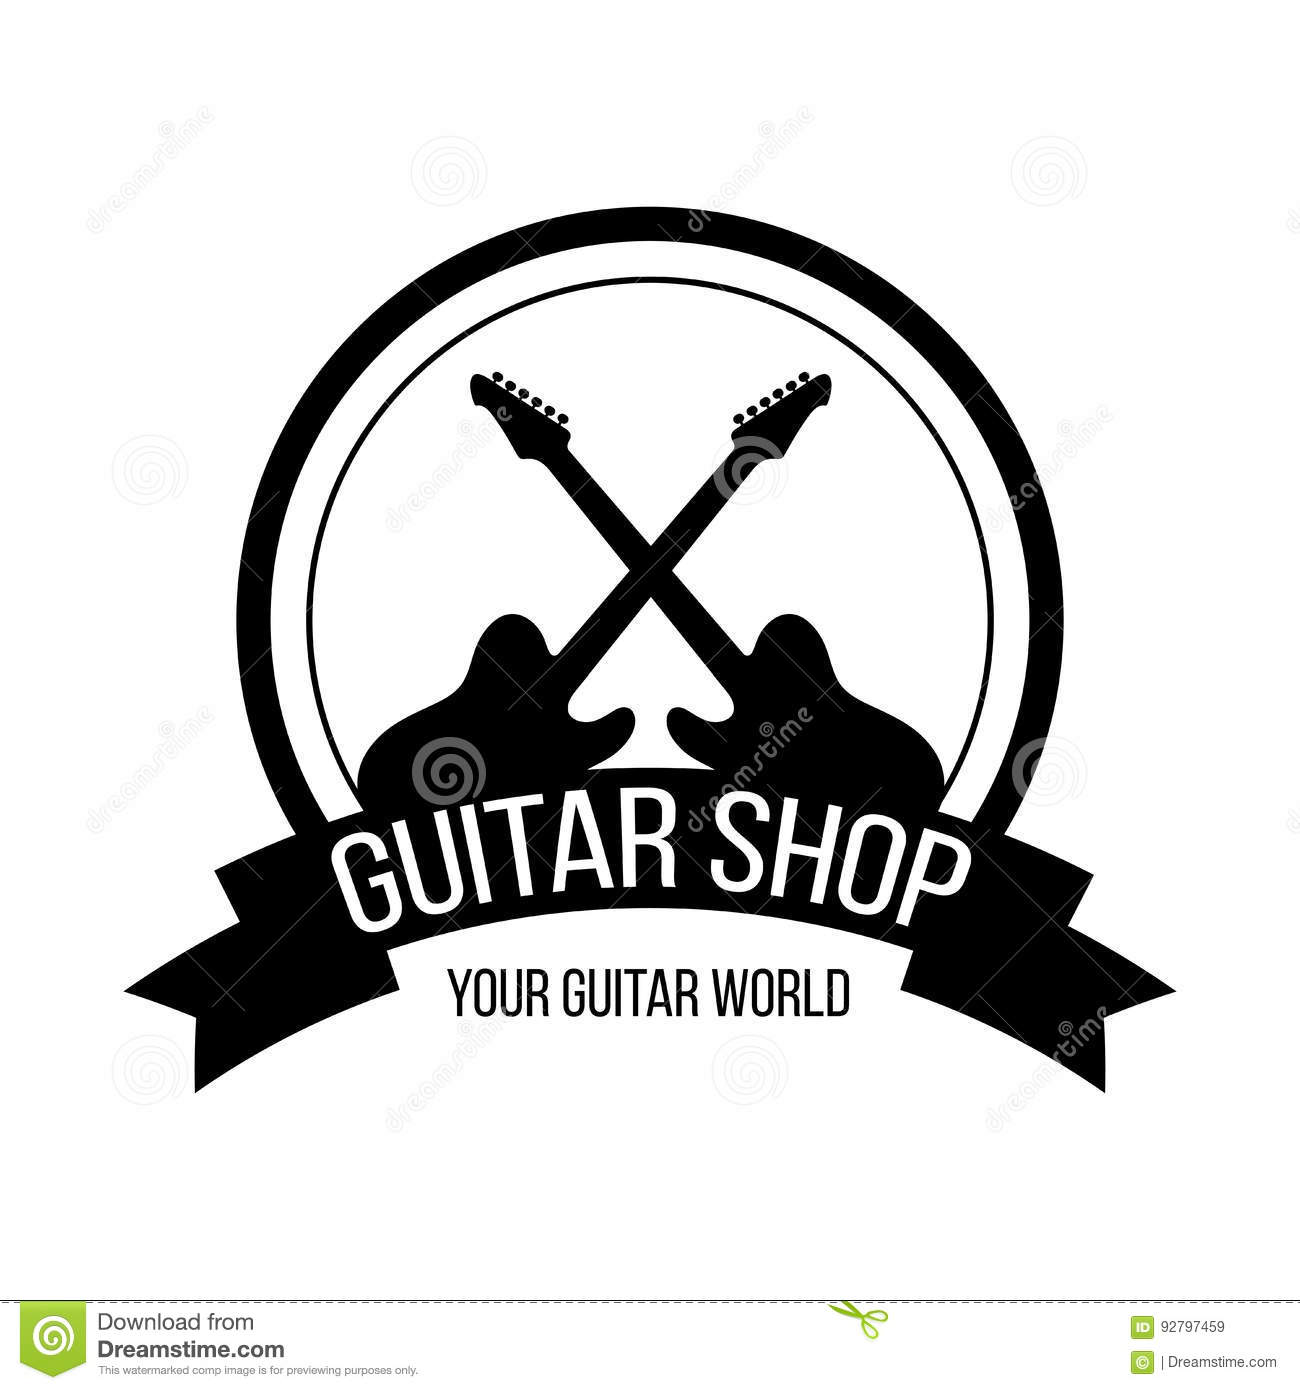 Guitar shop logo with crossing guitars